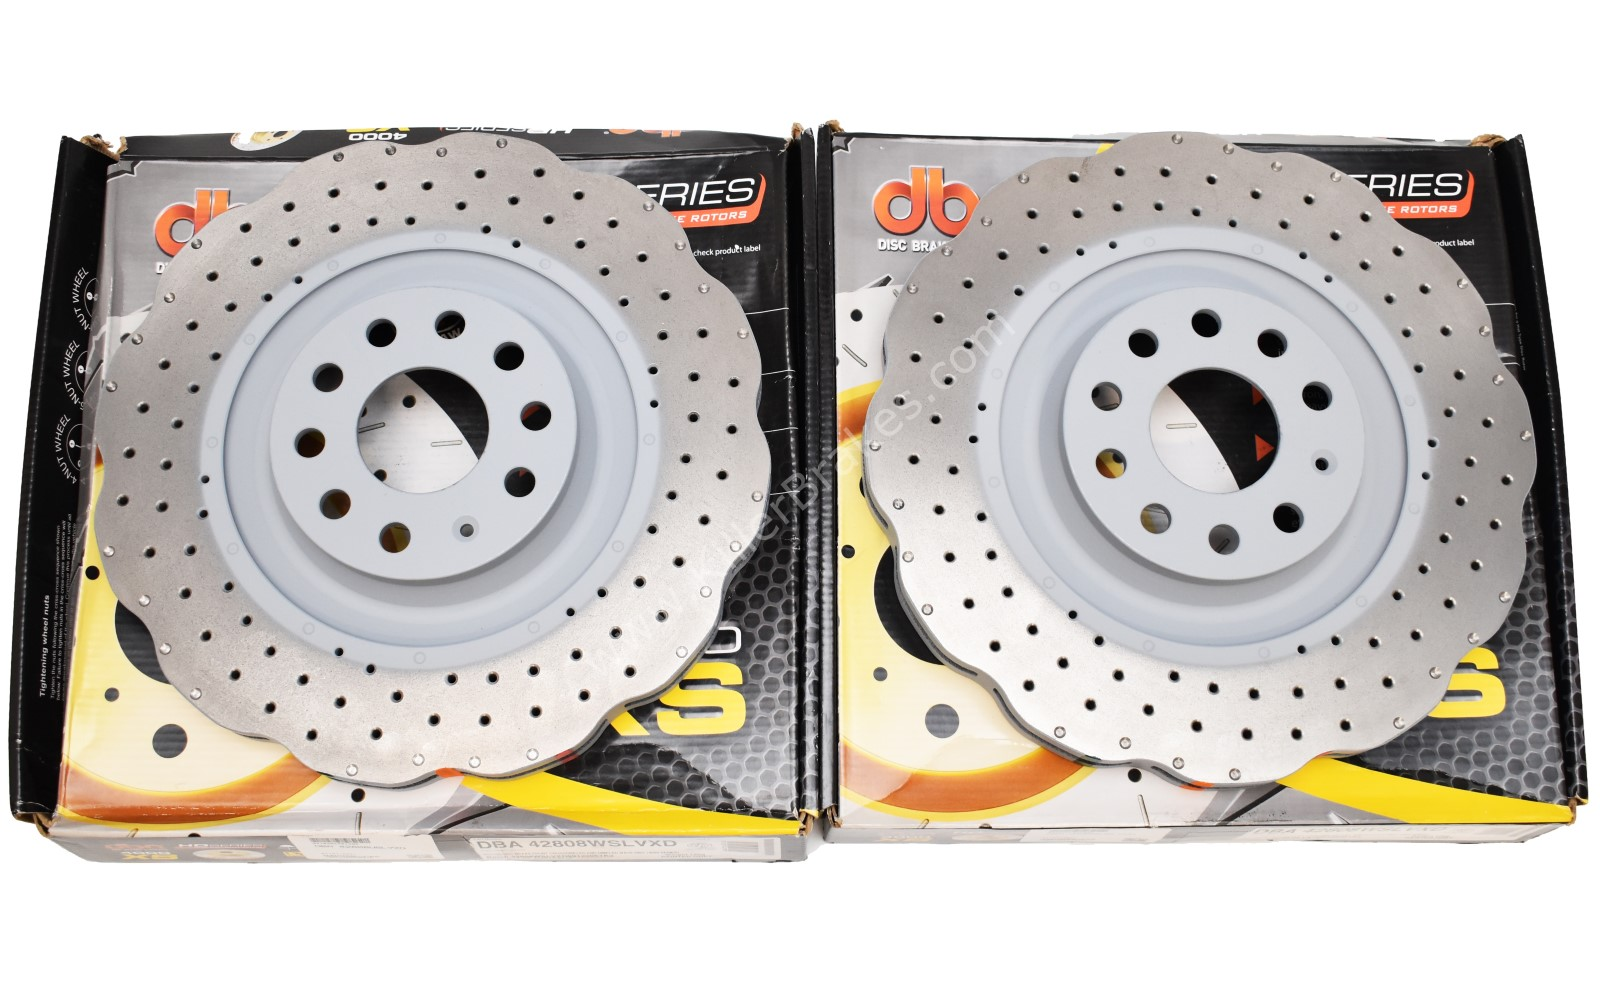 Front Wave DBA 42808WSLVXD Brake Discs 345x30mm 4000 series T3 Slotted New Golf 6R S3 8P